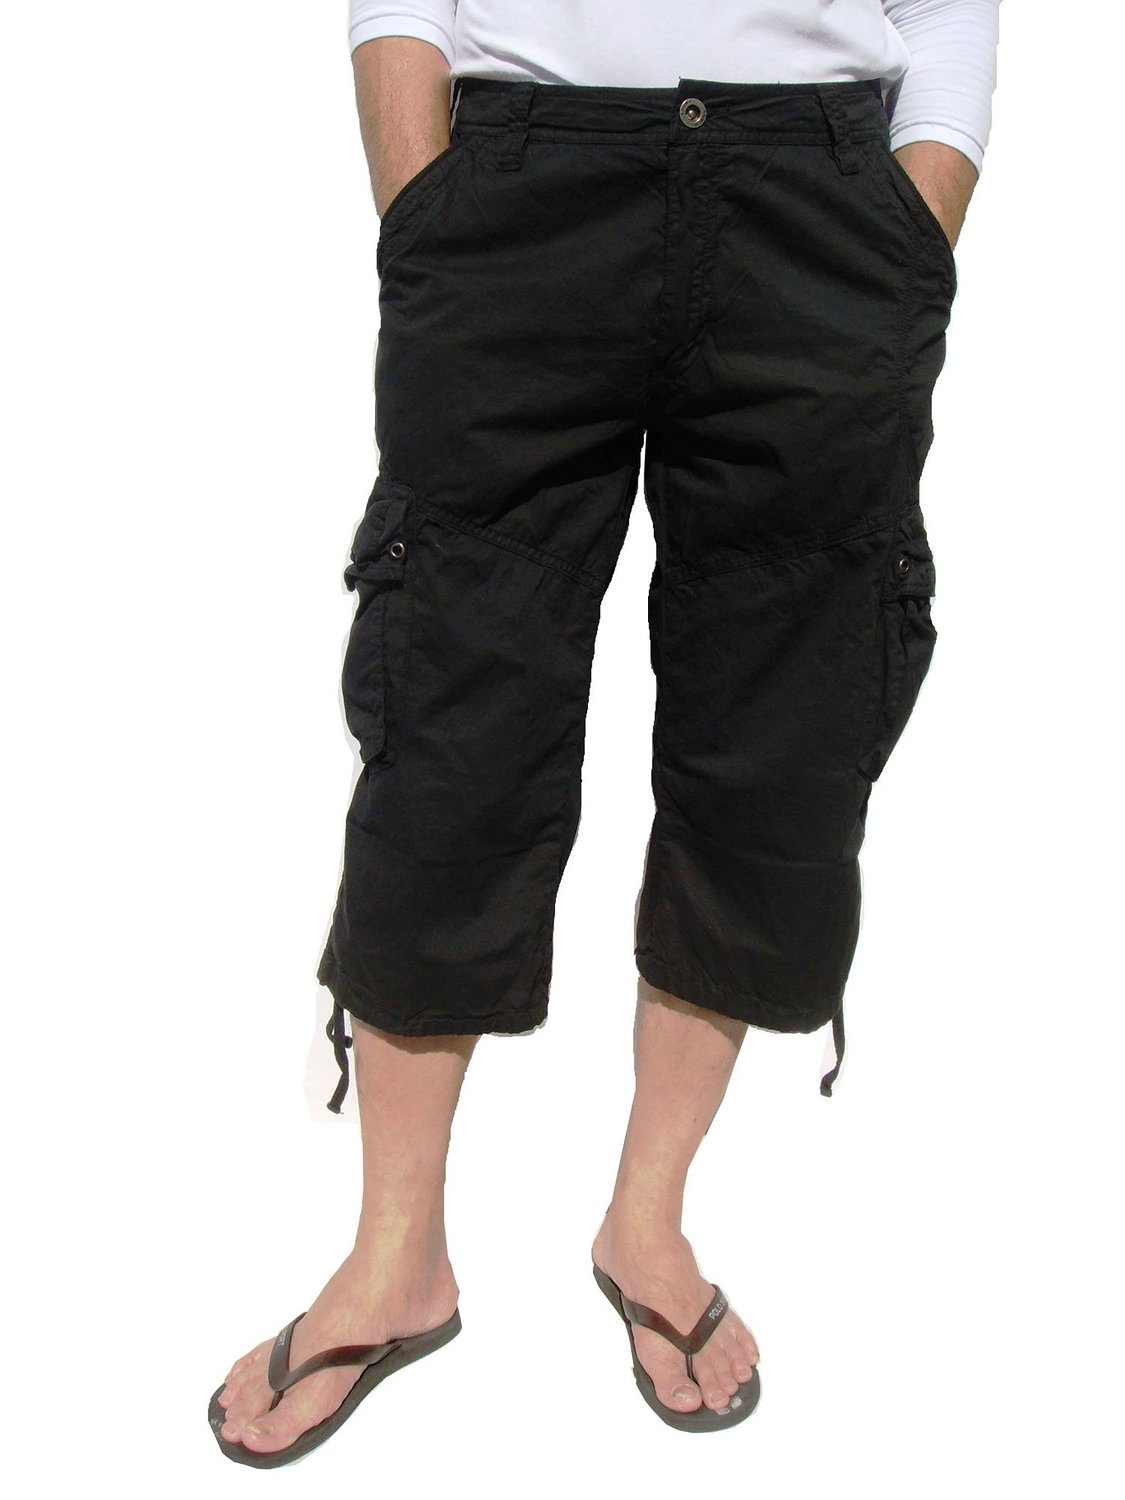 Stone Touch Capri Shorts - Mens Urban Clothing